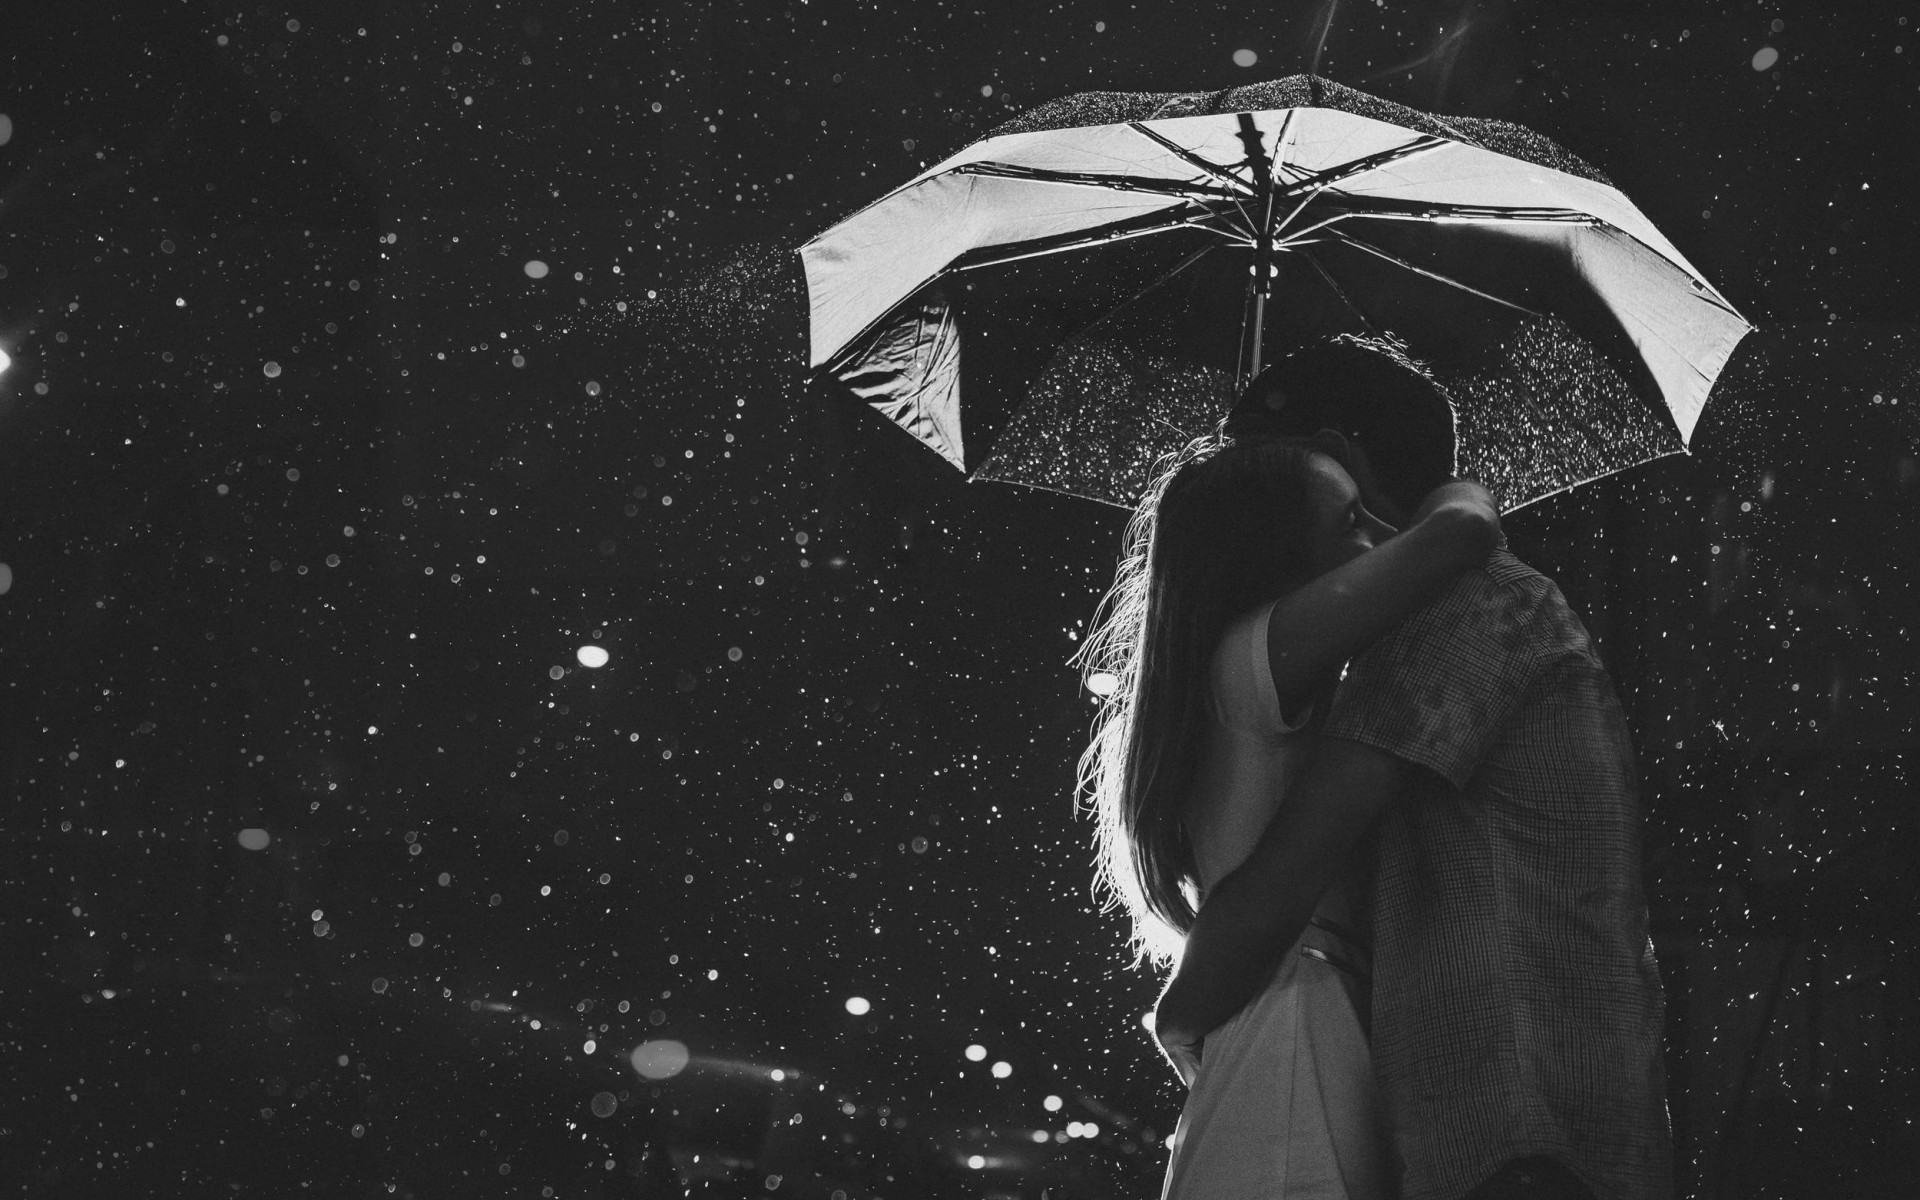 love couple in rain images